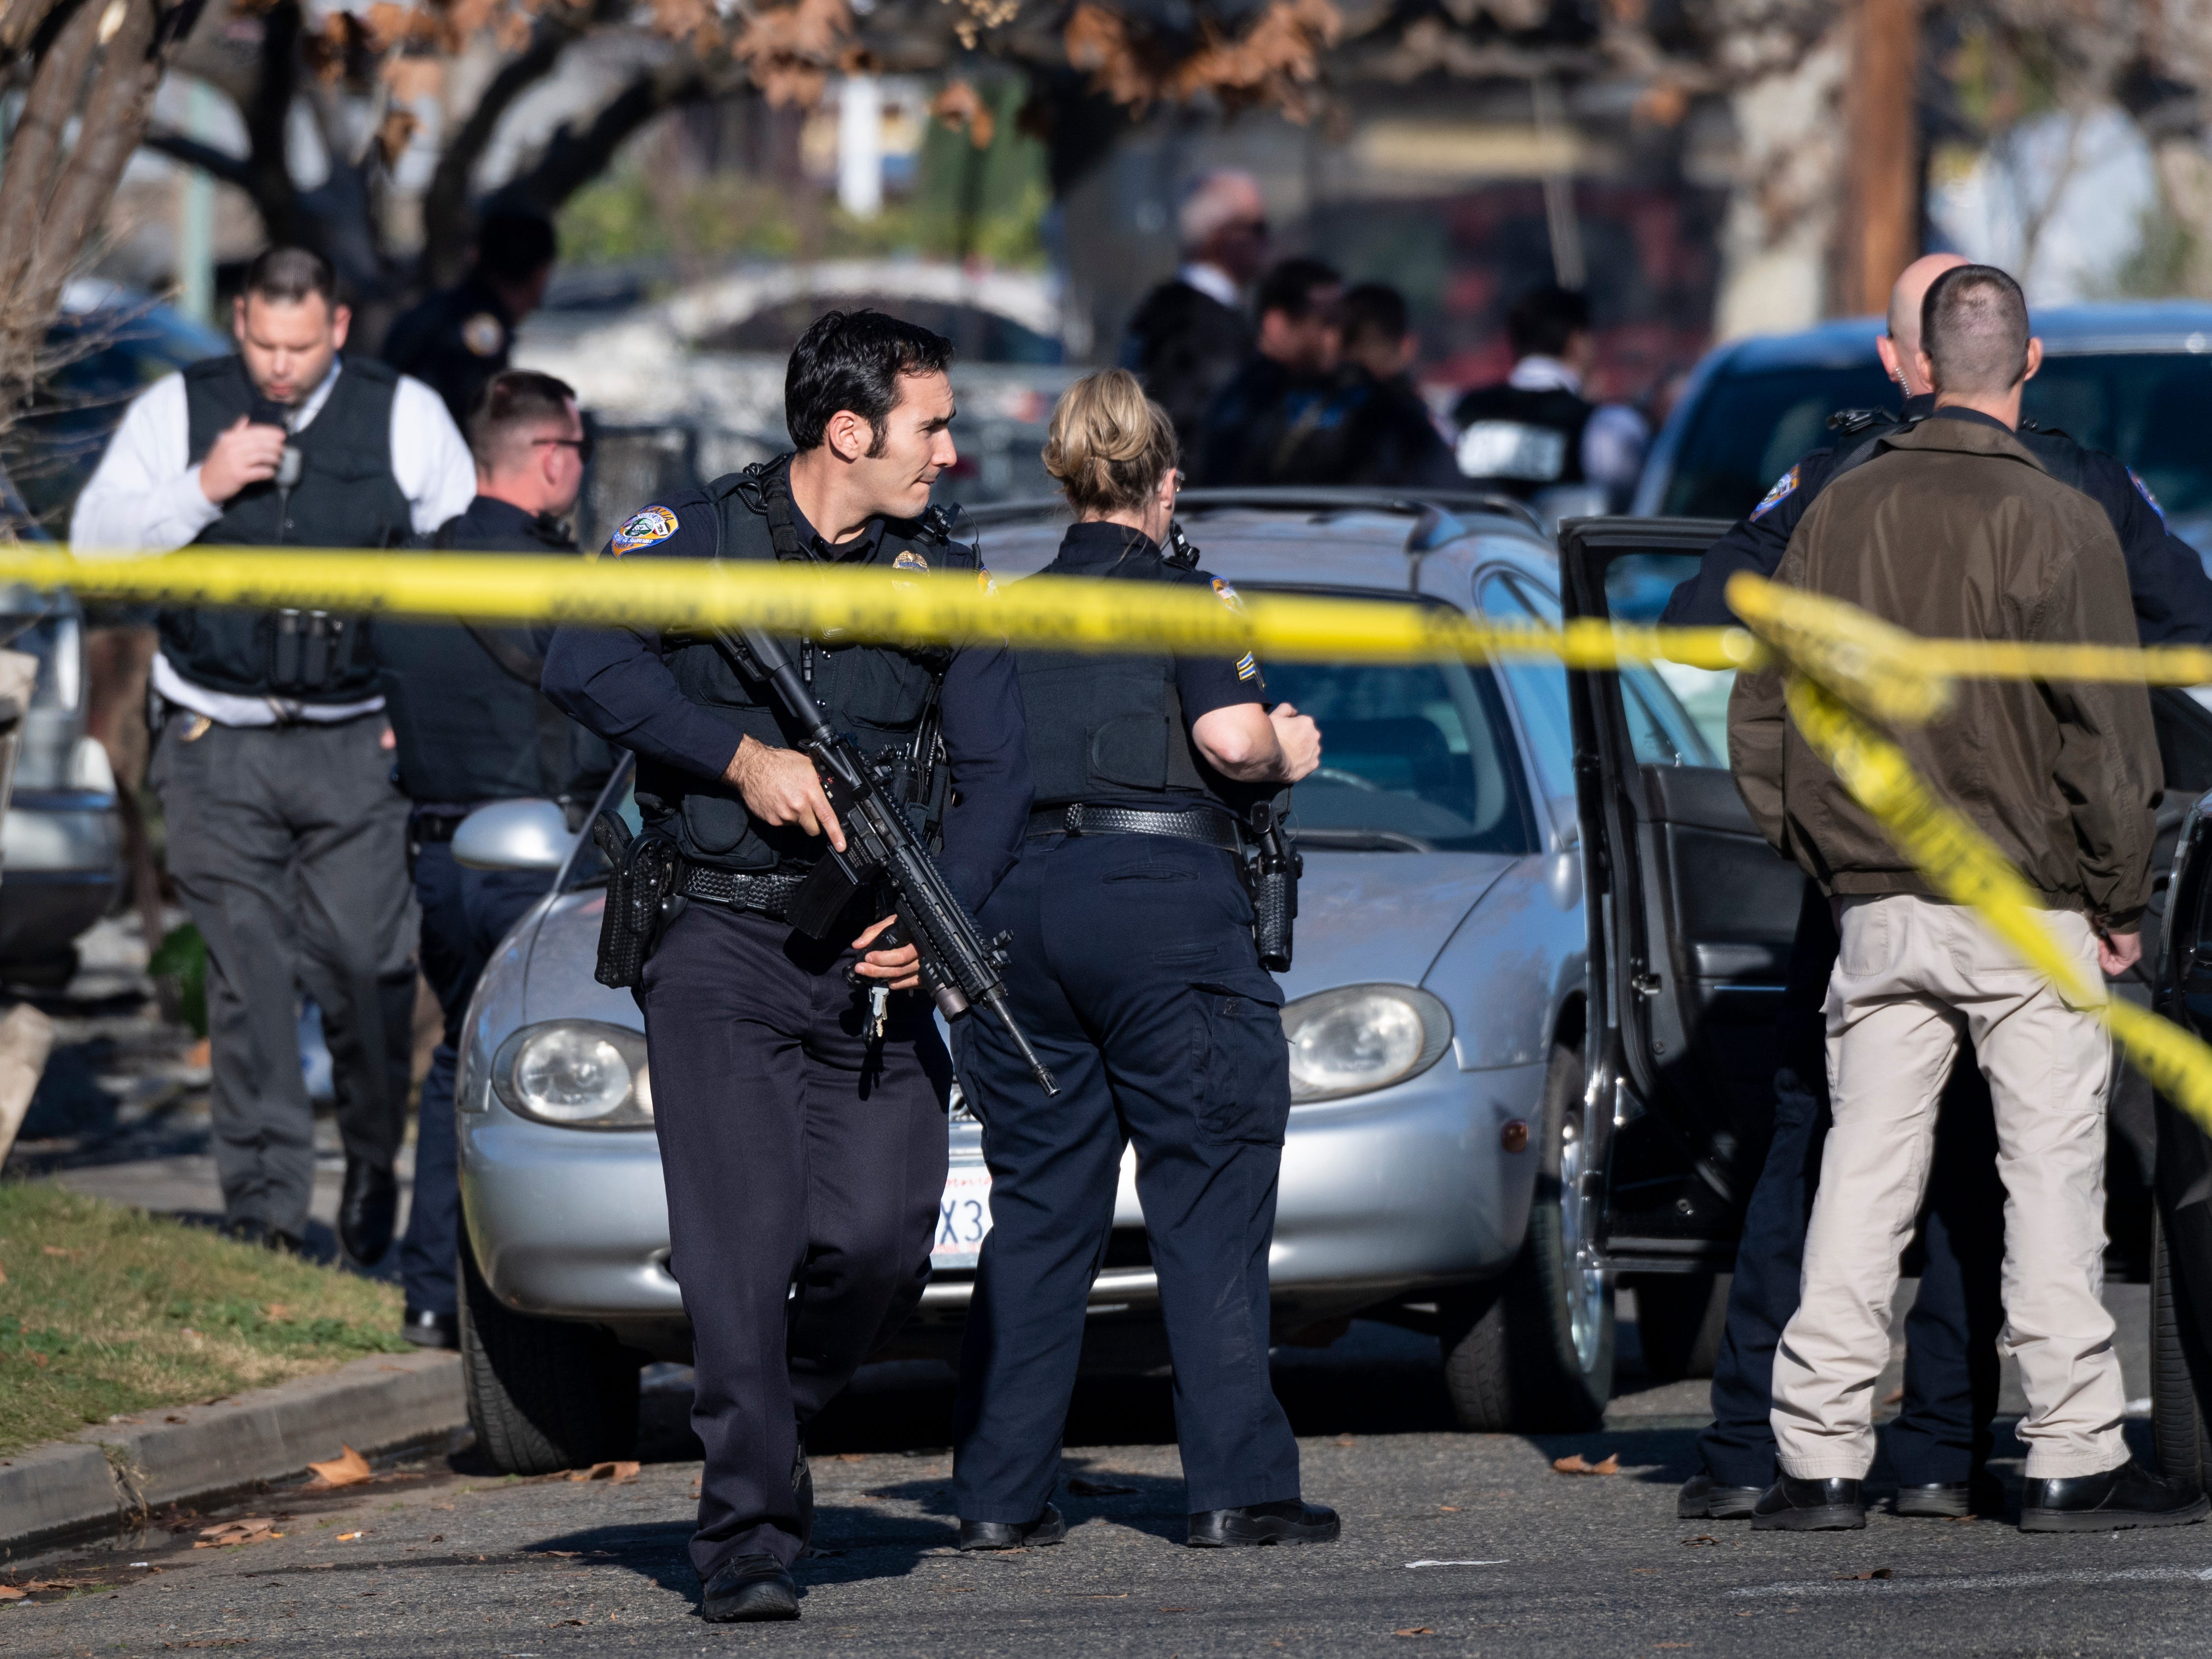 Visalia Police officers respond to a shooting in the 200 block of N.E. 4th Street on Thursday, January 3, 2019.